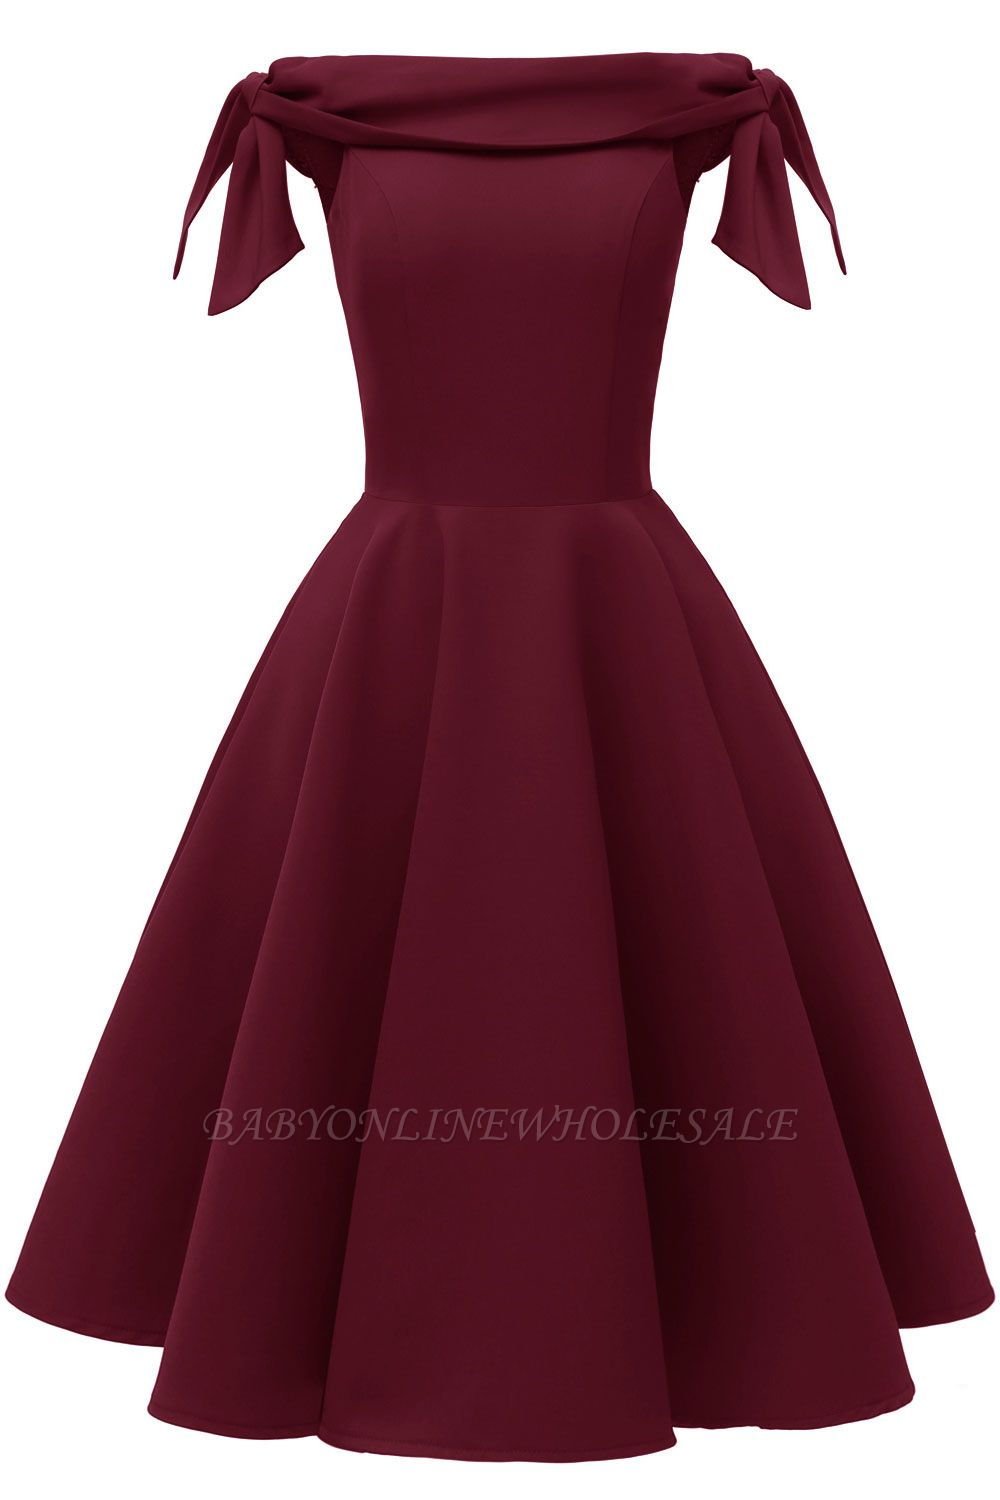 Womens Bateau Burgundy Navy Ruby Vintage Dresses | Retro Princess Short Party Dress